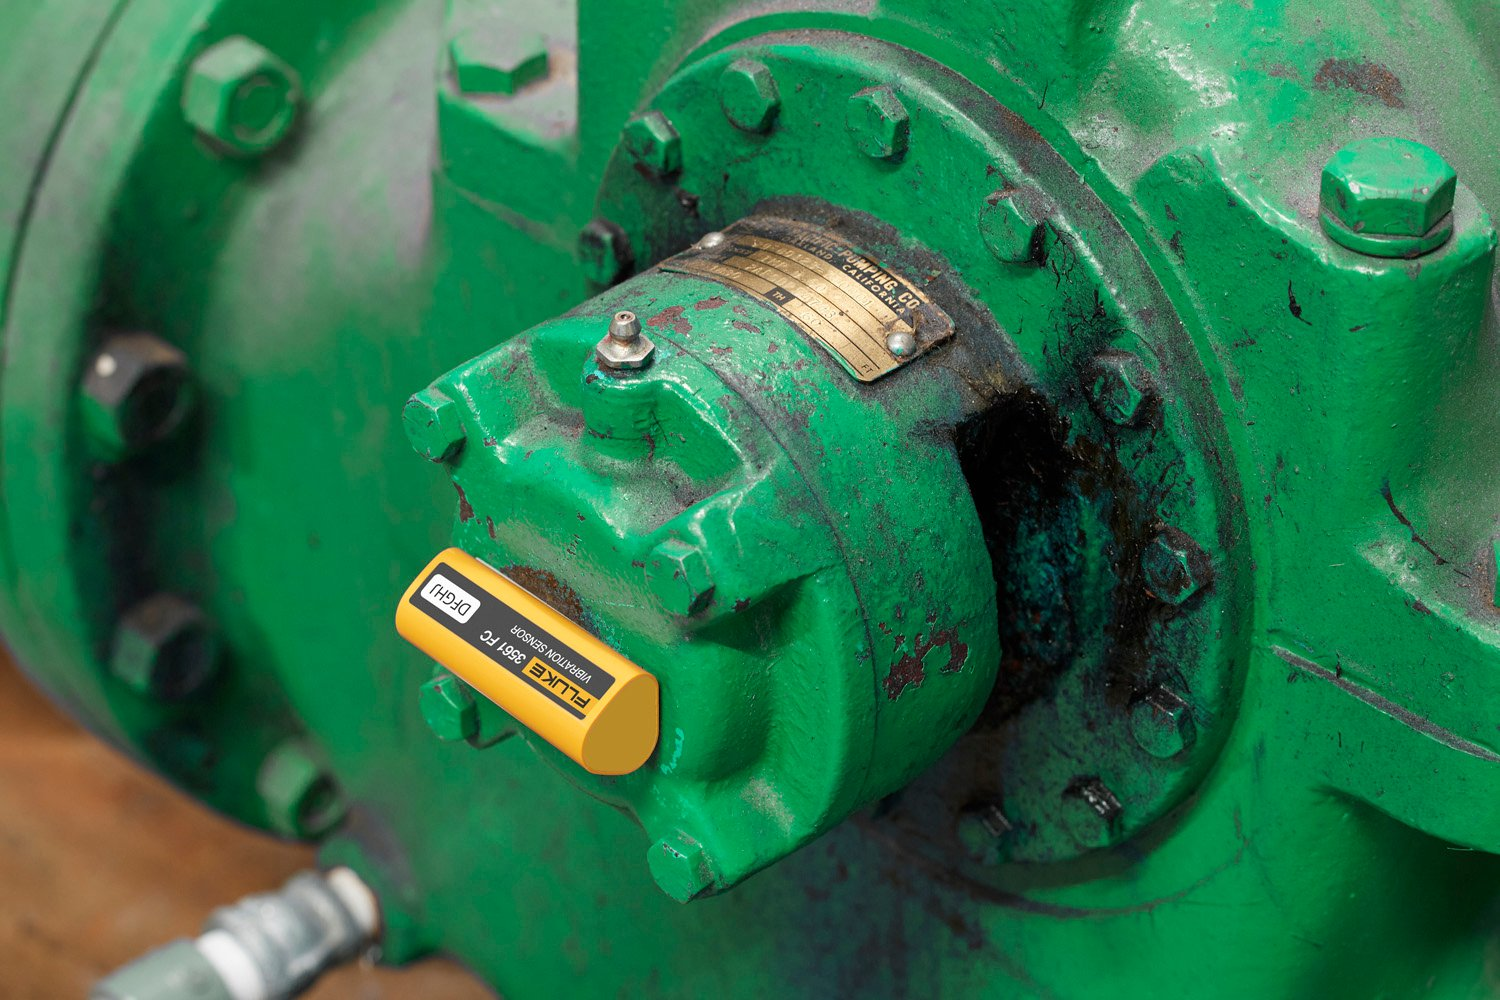 A clickable fluke condition monitoring image of a vibration sensor installed on an asset. Leads to the vibration monitoring page